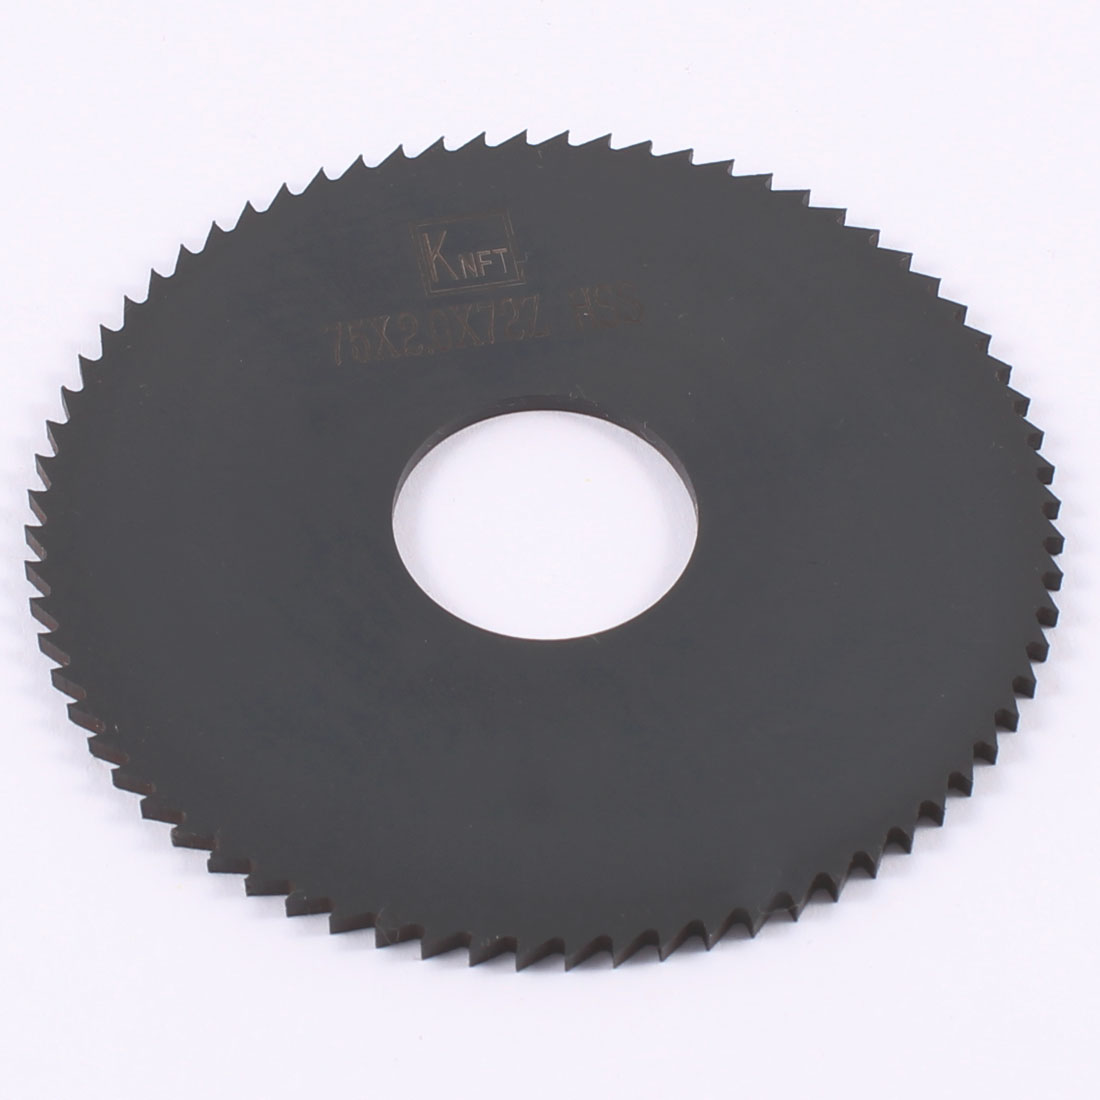 "2 15/16"" x 2/25"" x 7/8"" 72T HSS Slitting Saw Blade Cutting Tool Black"